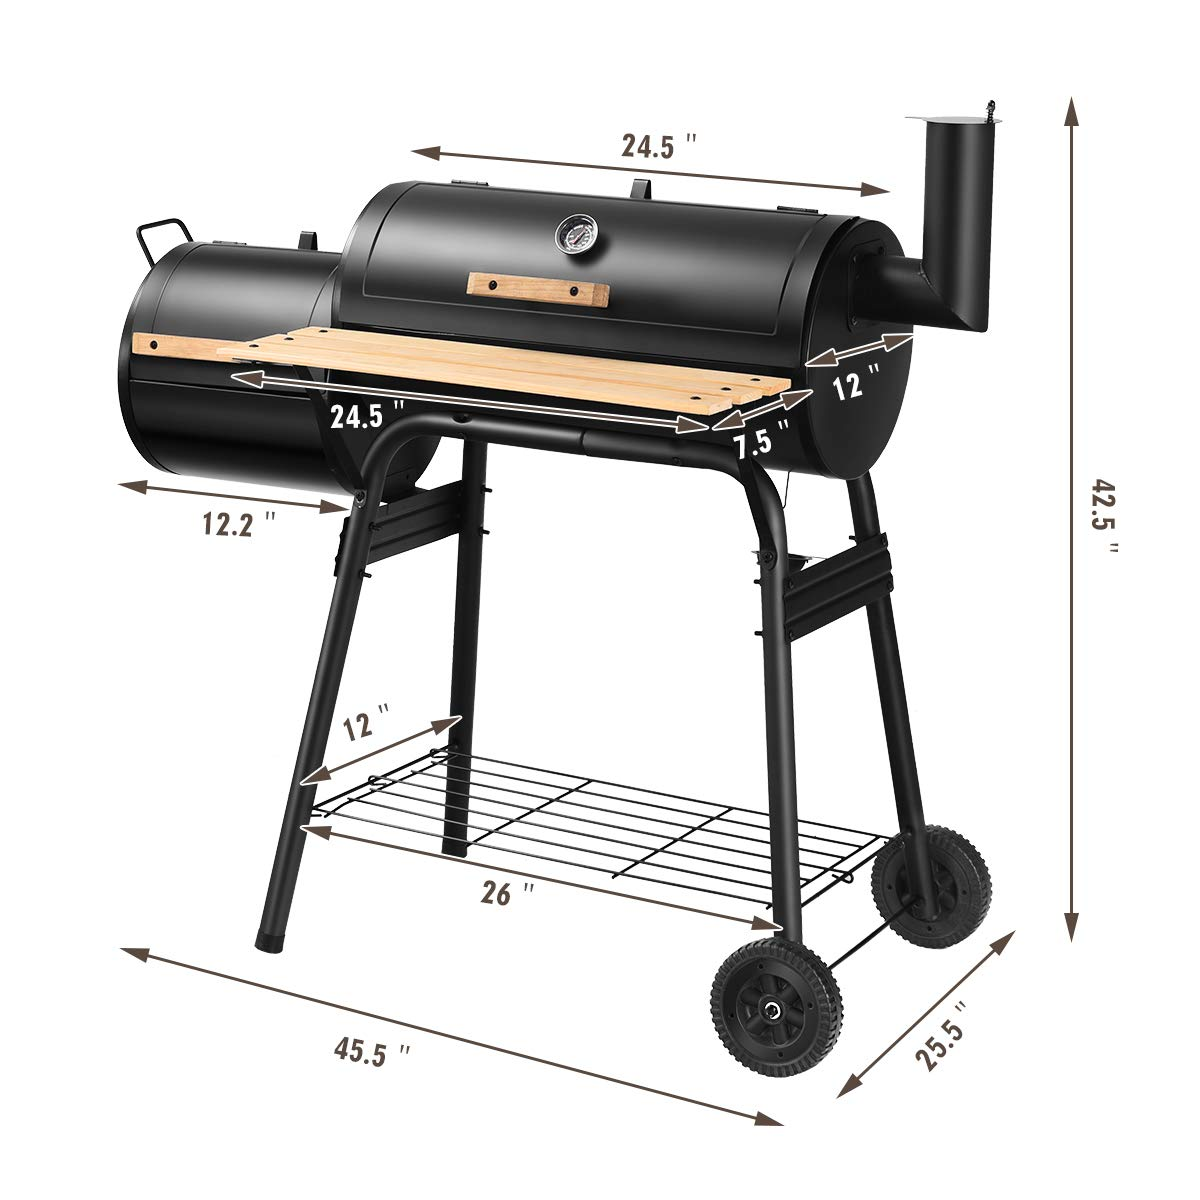 Giantex BBQ Grill Charcoal Barbecue Grill Outdoor Pit Patio Backyard Home Meat Cooker Smoker with Offset Smoker by Giantex (Image #9)